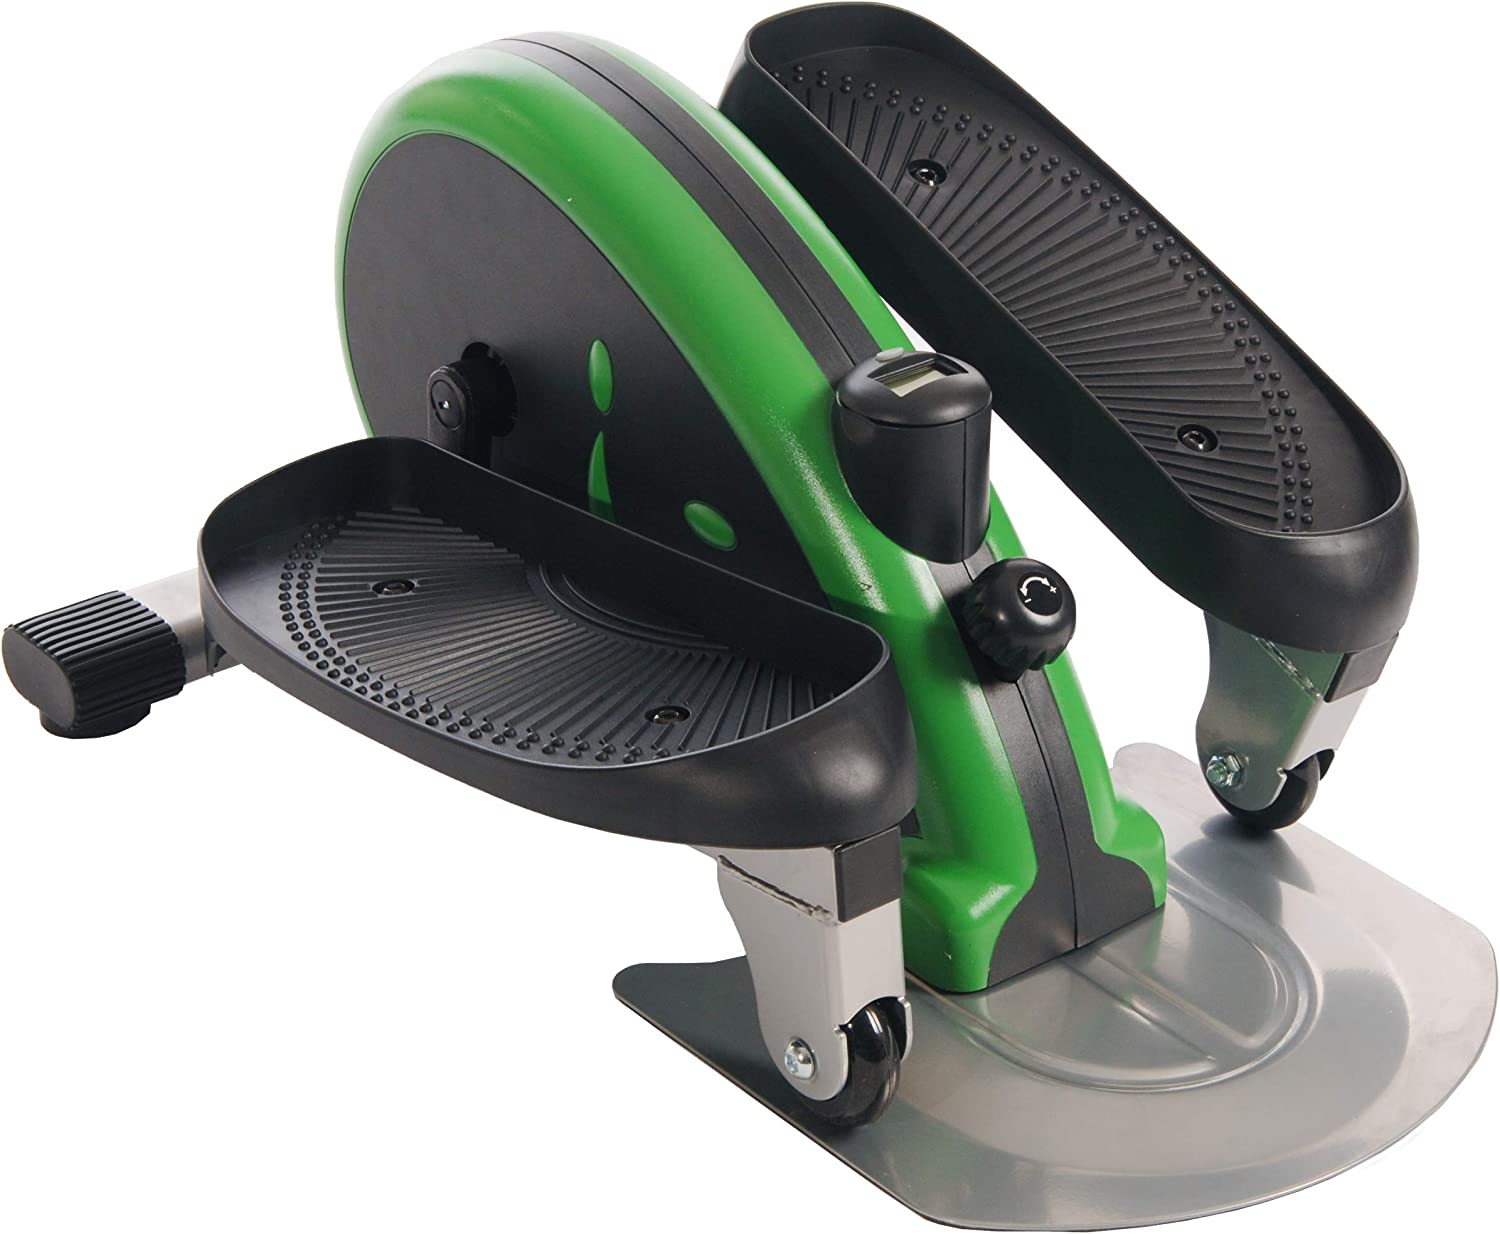 best compact elliptical: Stamina Inmotion Elliptical